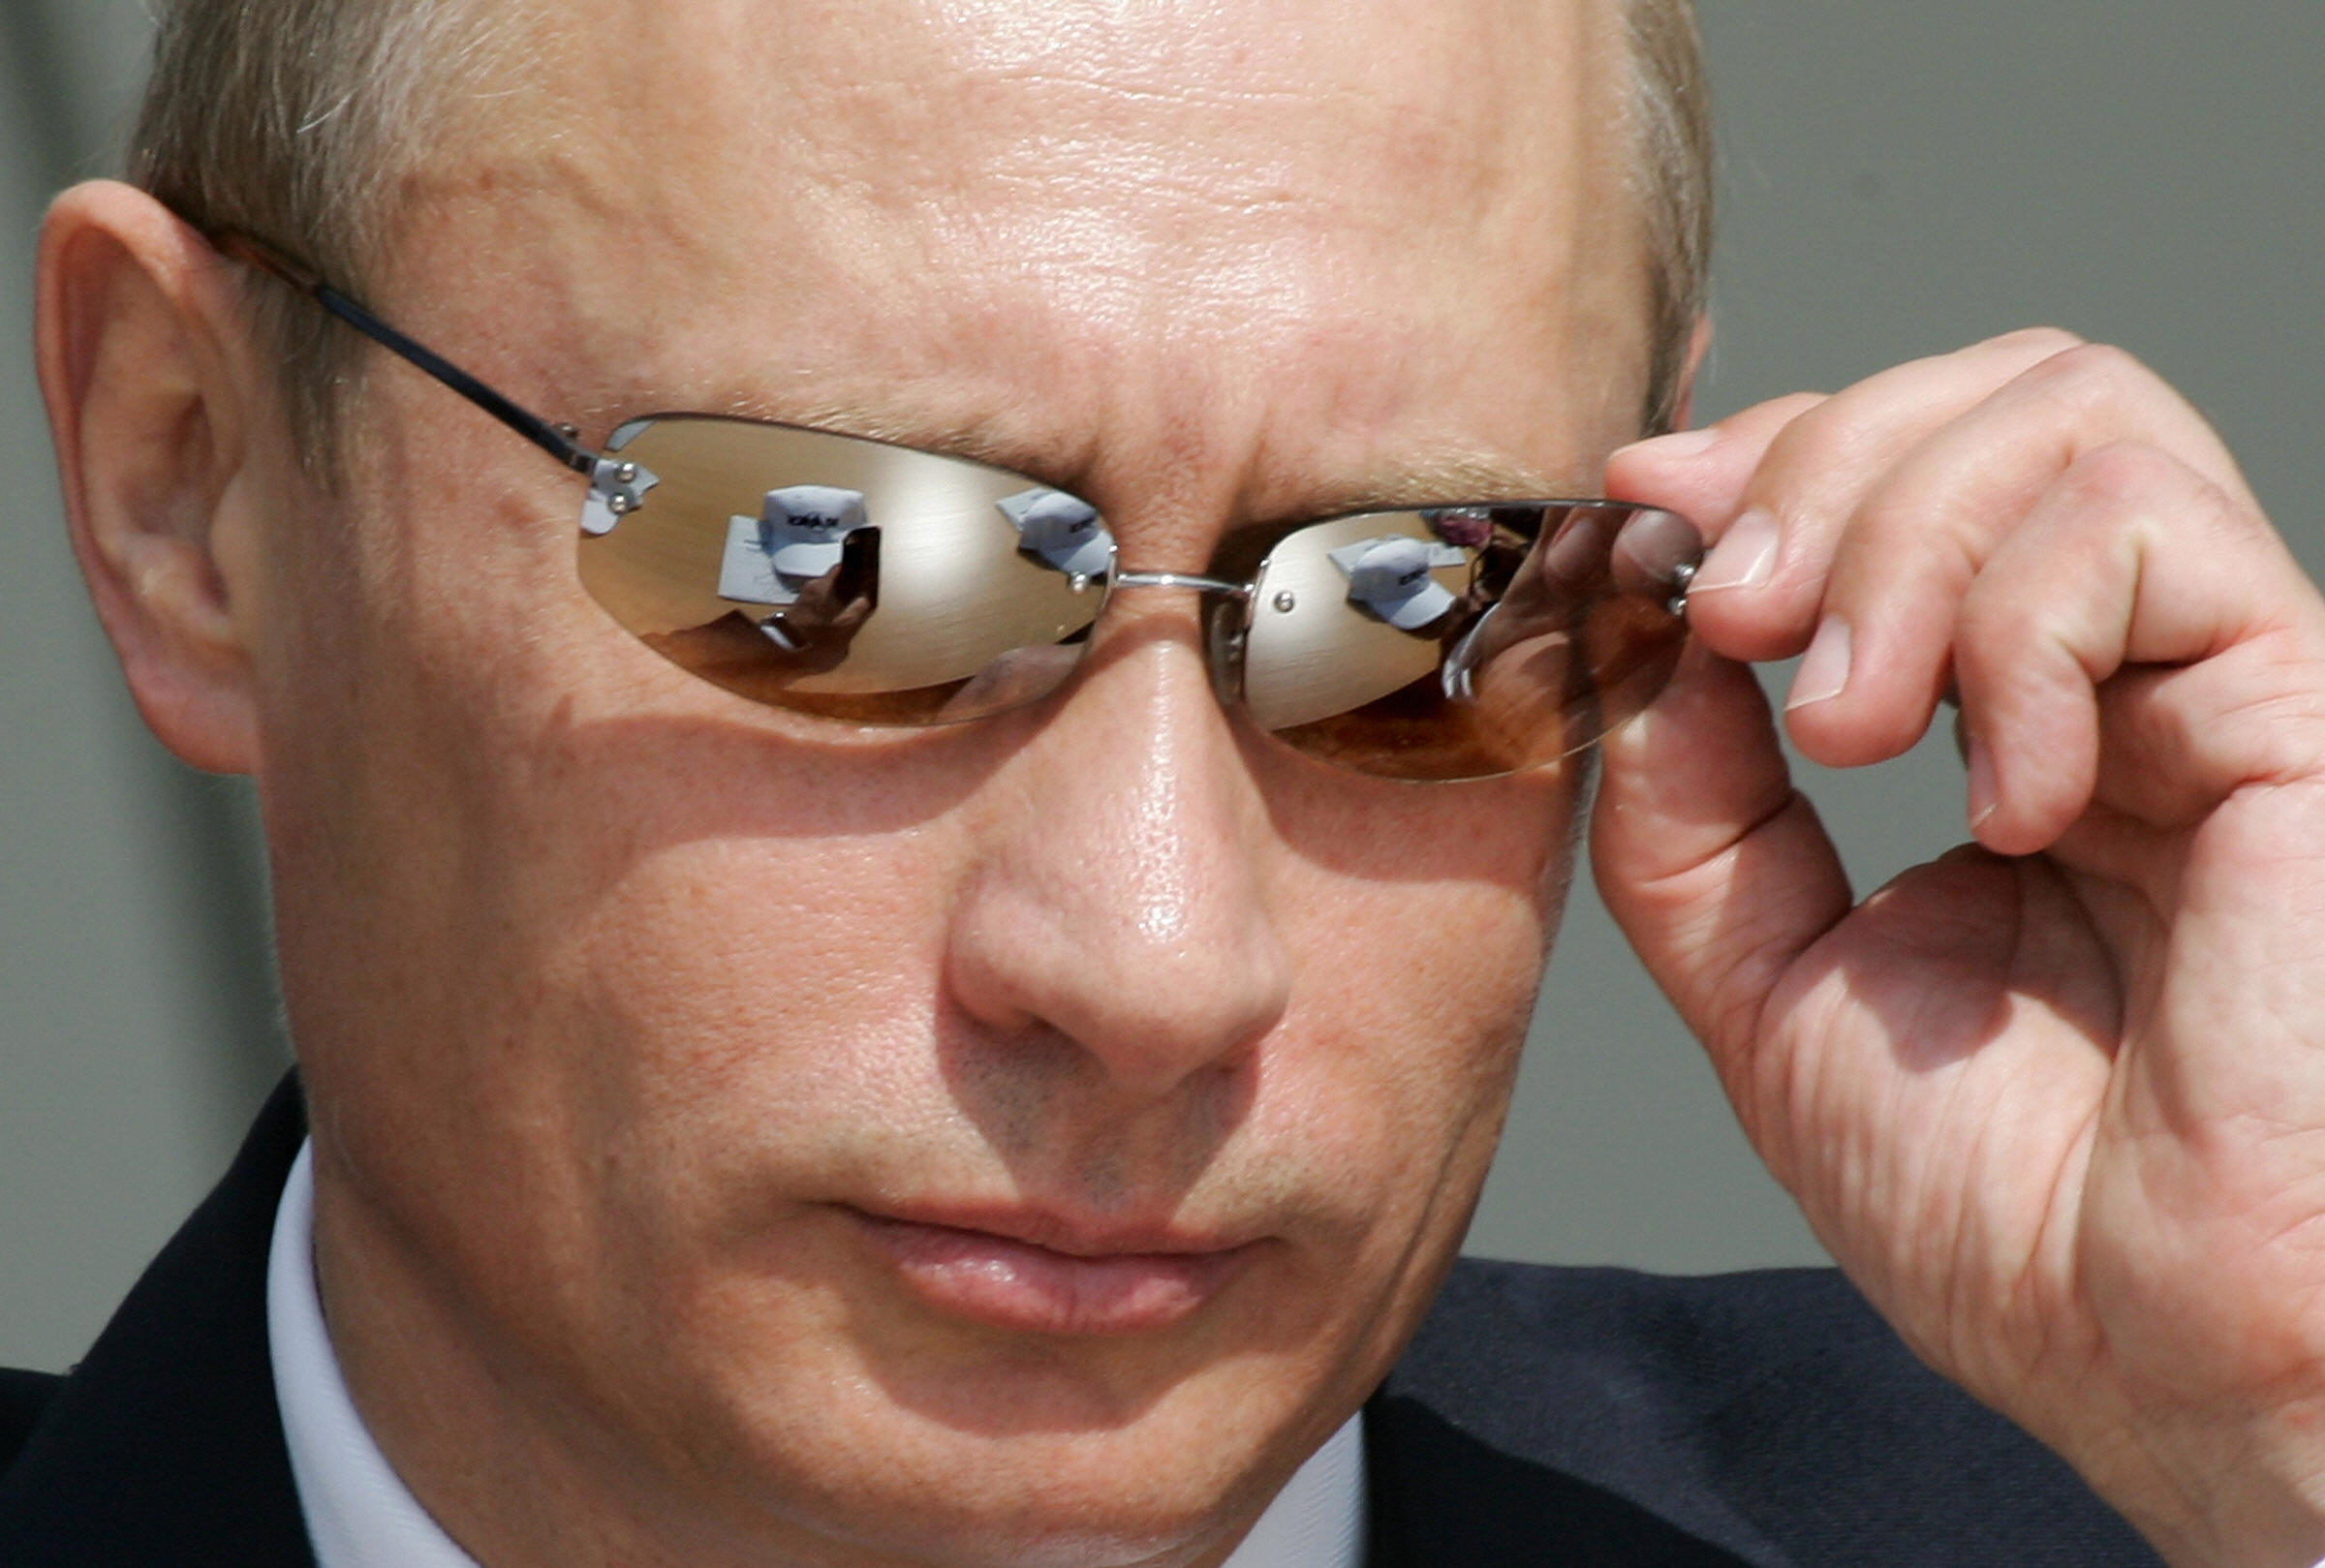 Russian President Vladimir Putin adjusts his sunglasses during the MAKS-2005 International air and space show in Zhukovsky, some 50 kms from Moscow, 16 August 2005. AFP PHOTO / MLADEN ANTONOV/ Getty Images